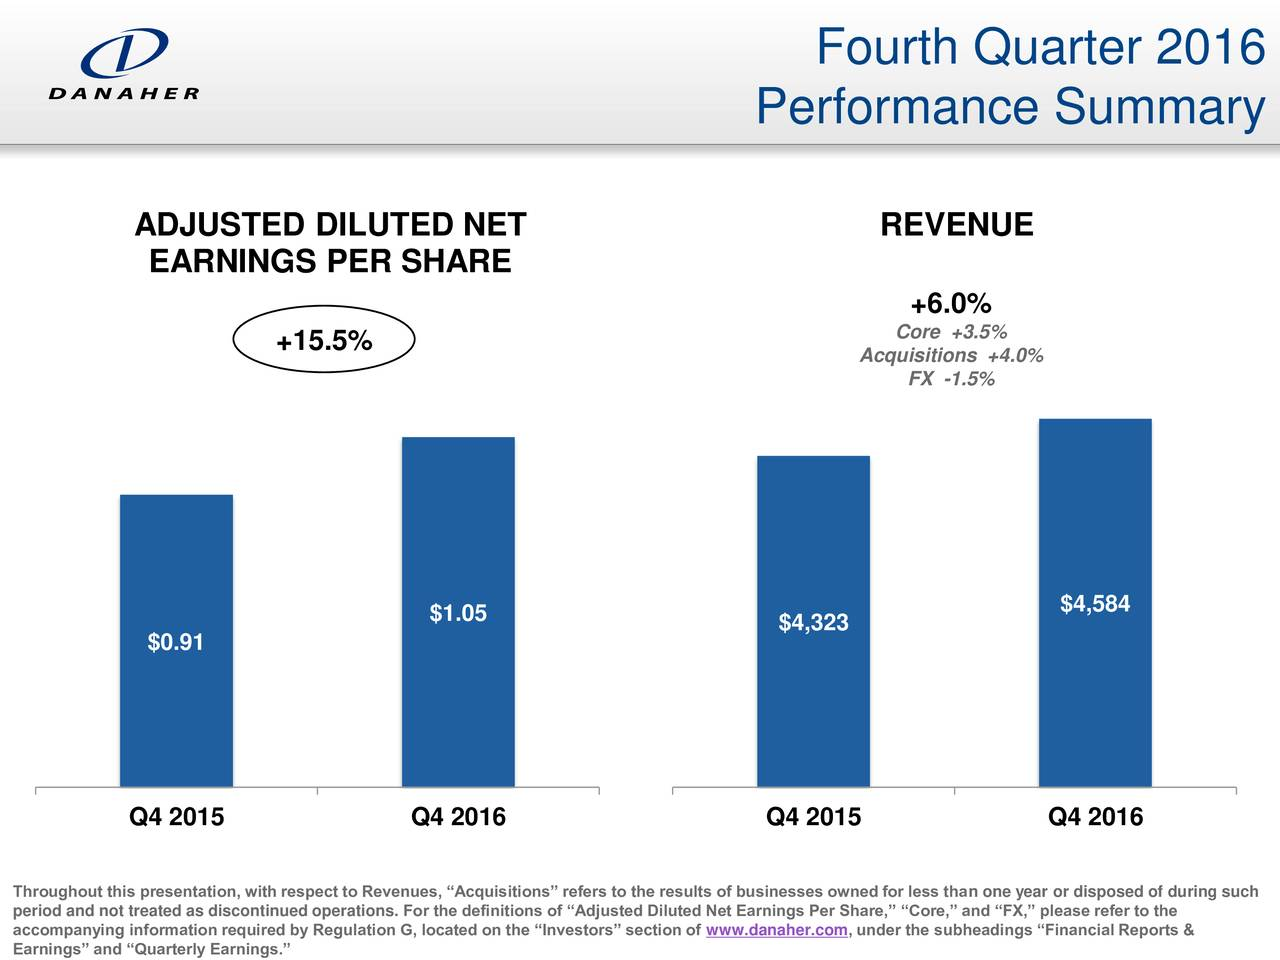 Performance Summary ADJUSTED DILUTED NET REVENUE EARNINGS PER SHARE +6.0% Core +3.5% +15.5% Acquisitions +4.0% FX -1.5% $4,584 $1.05 $4,323 $0.91 Q4 2015 Q4 2016 Q4 2015 Q4 2016 period and not treated as discontinued operations. For the definitions of Adjusted Diluted Net Earnings Per Share, Core, and FX, please refer to theing such accompanying information required by Regulation G, located on the Investors section of www.danaher.com, under the subheadings Financial Reports &